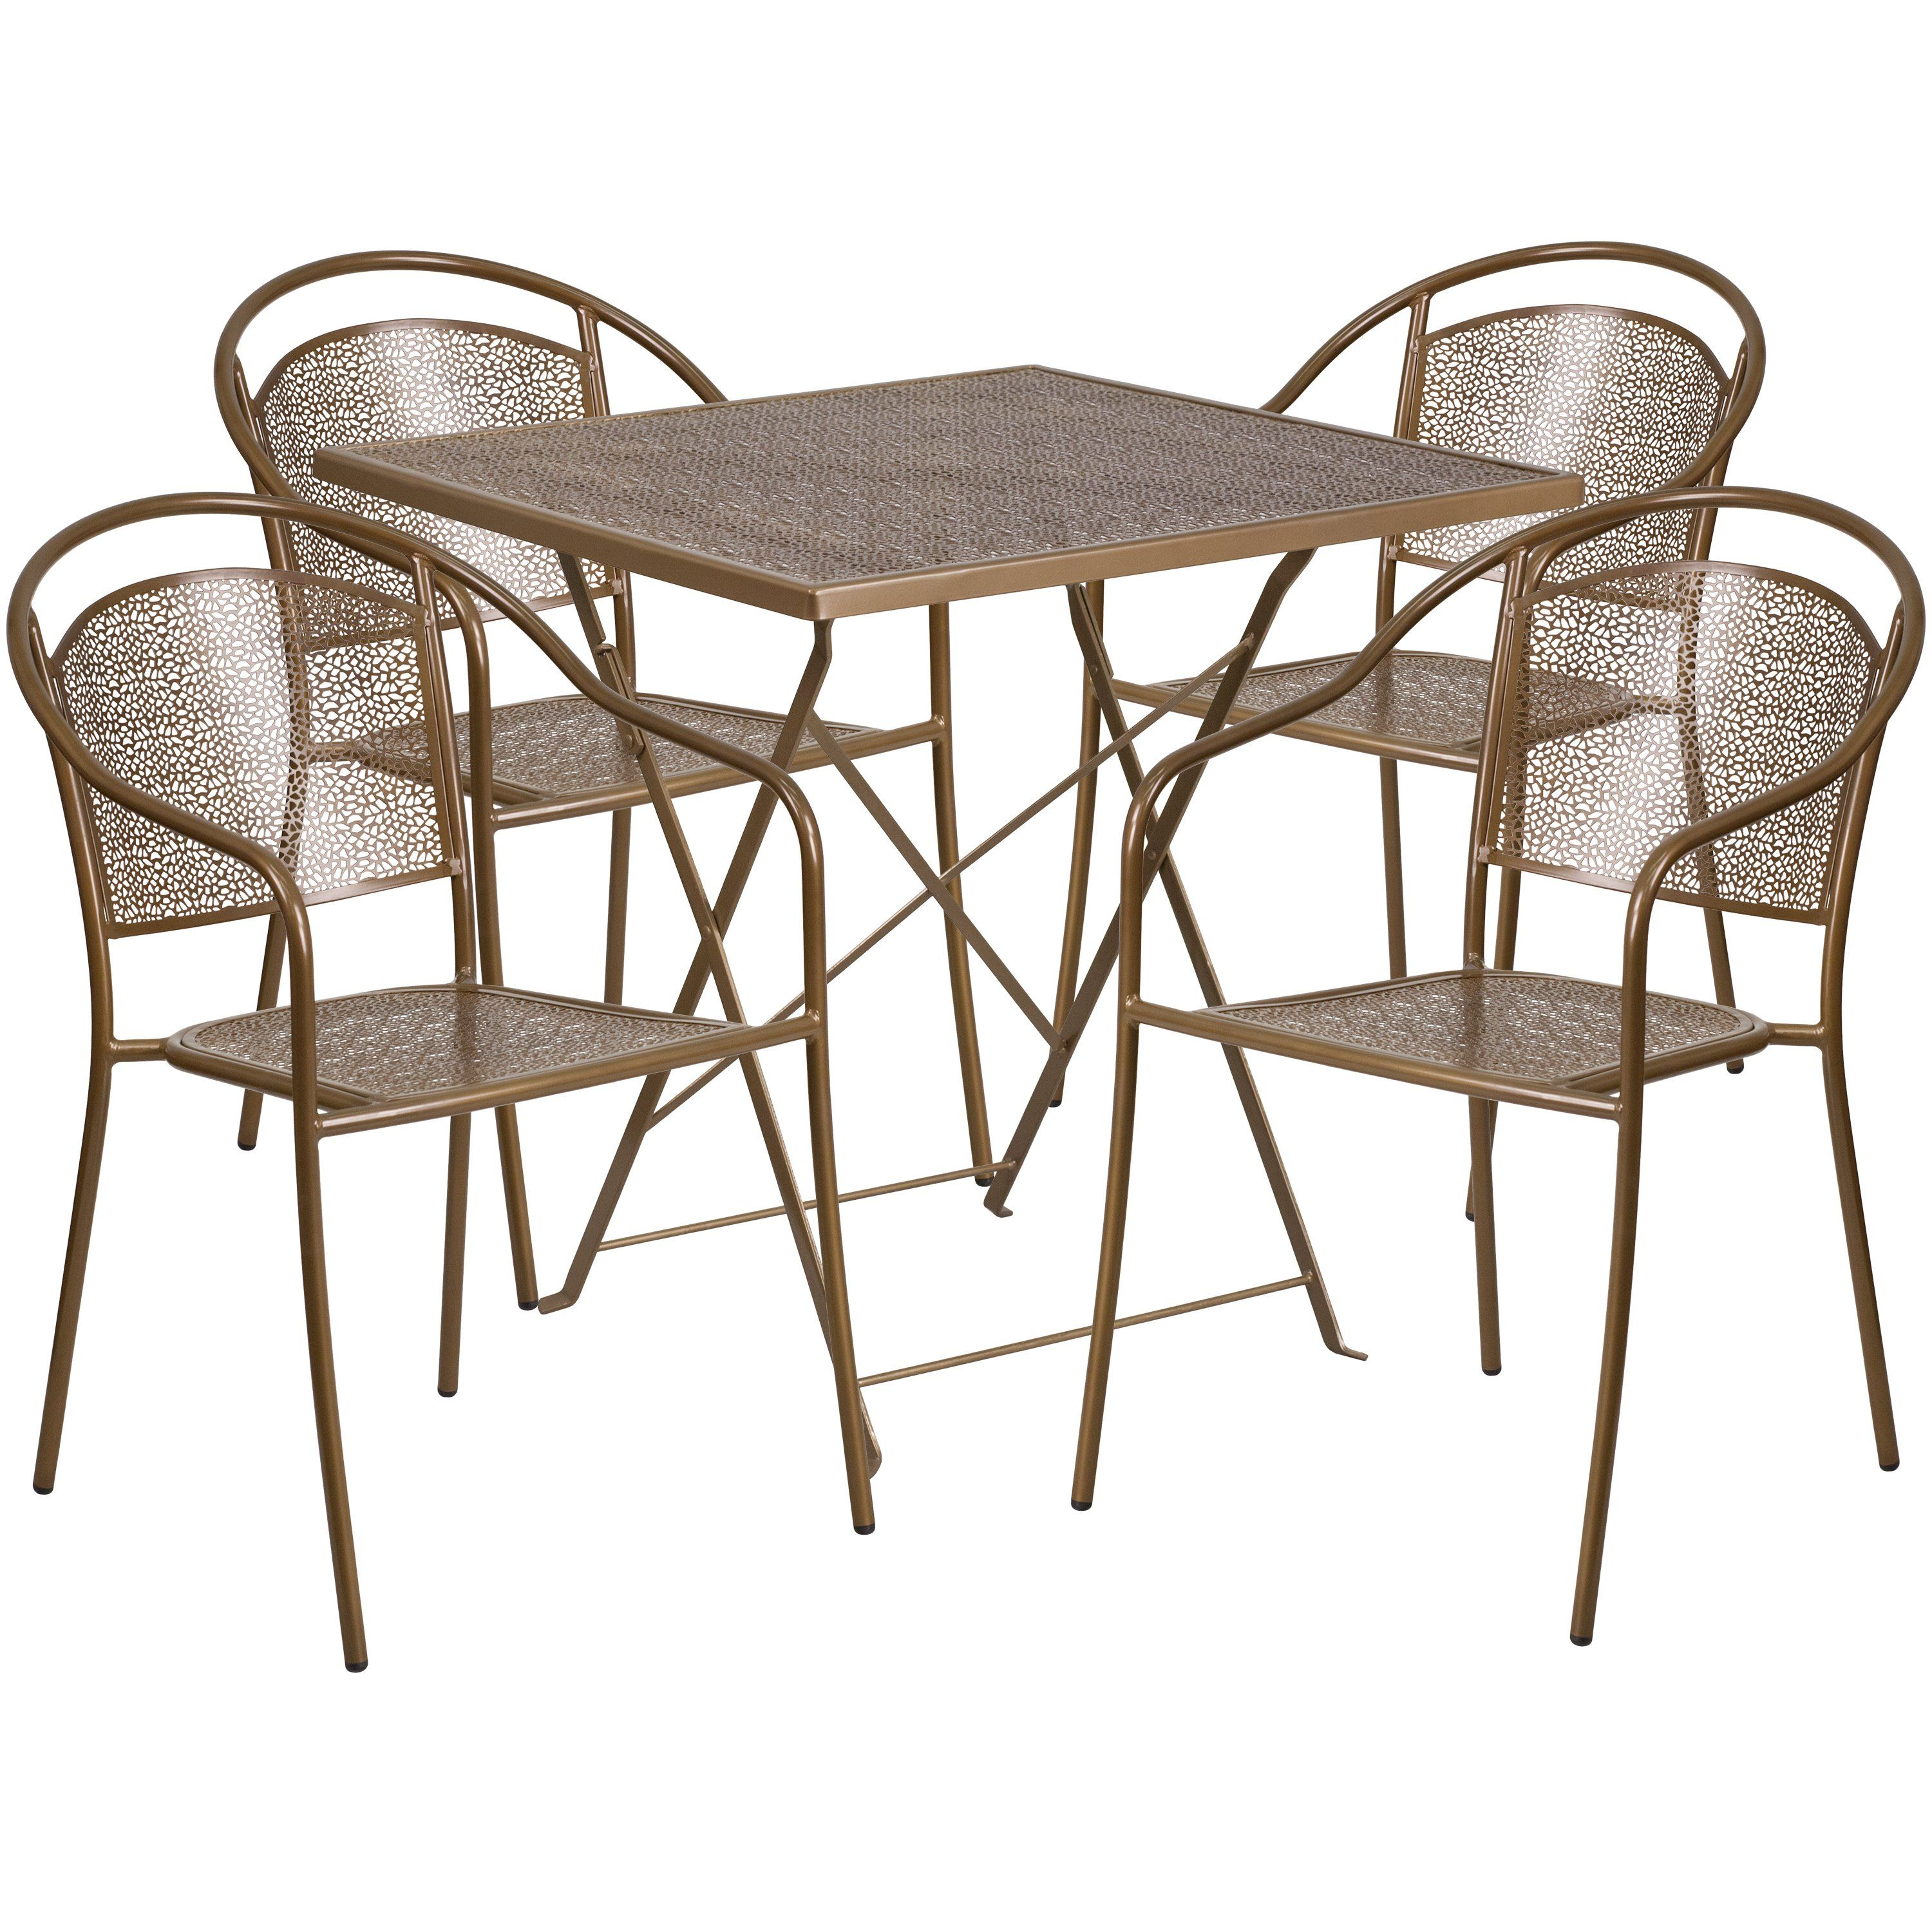 Uu square gold indooroutdoor steel folding patio table set with